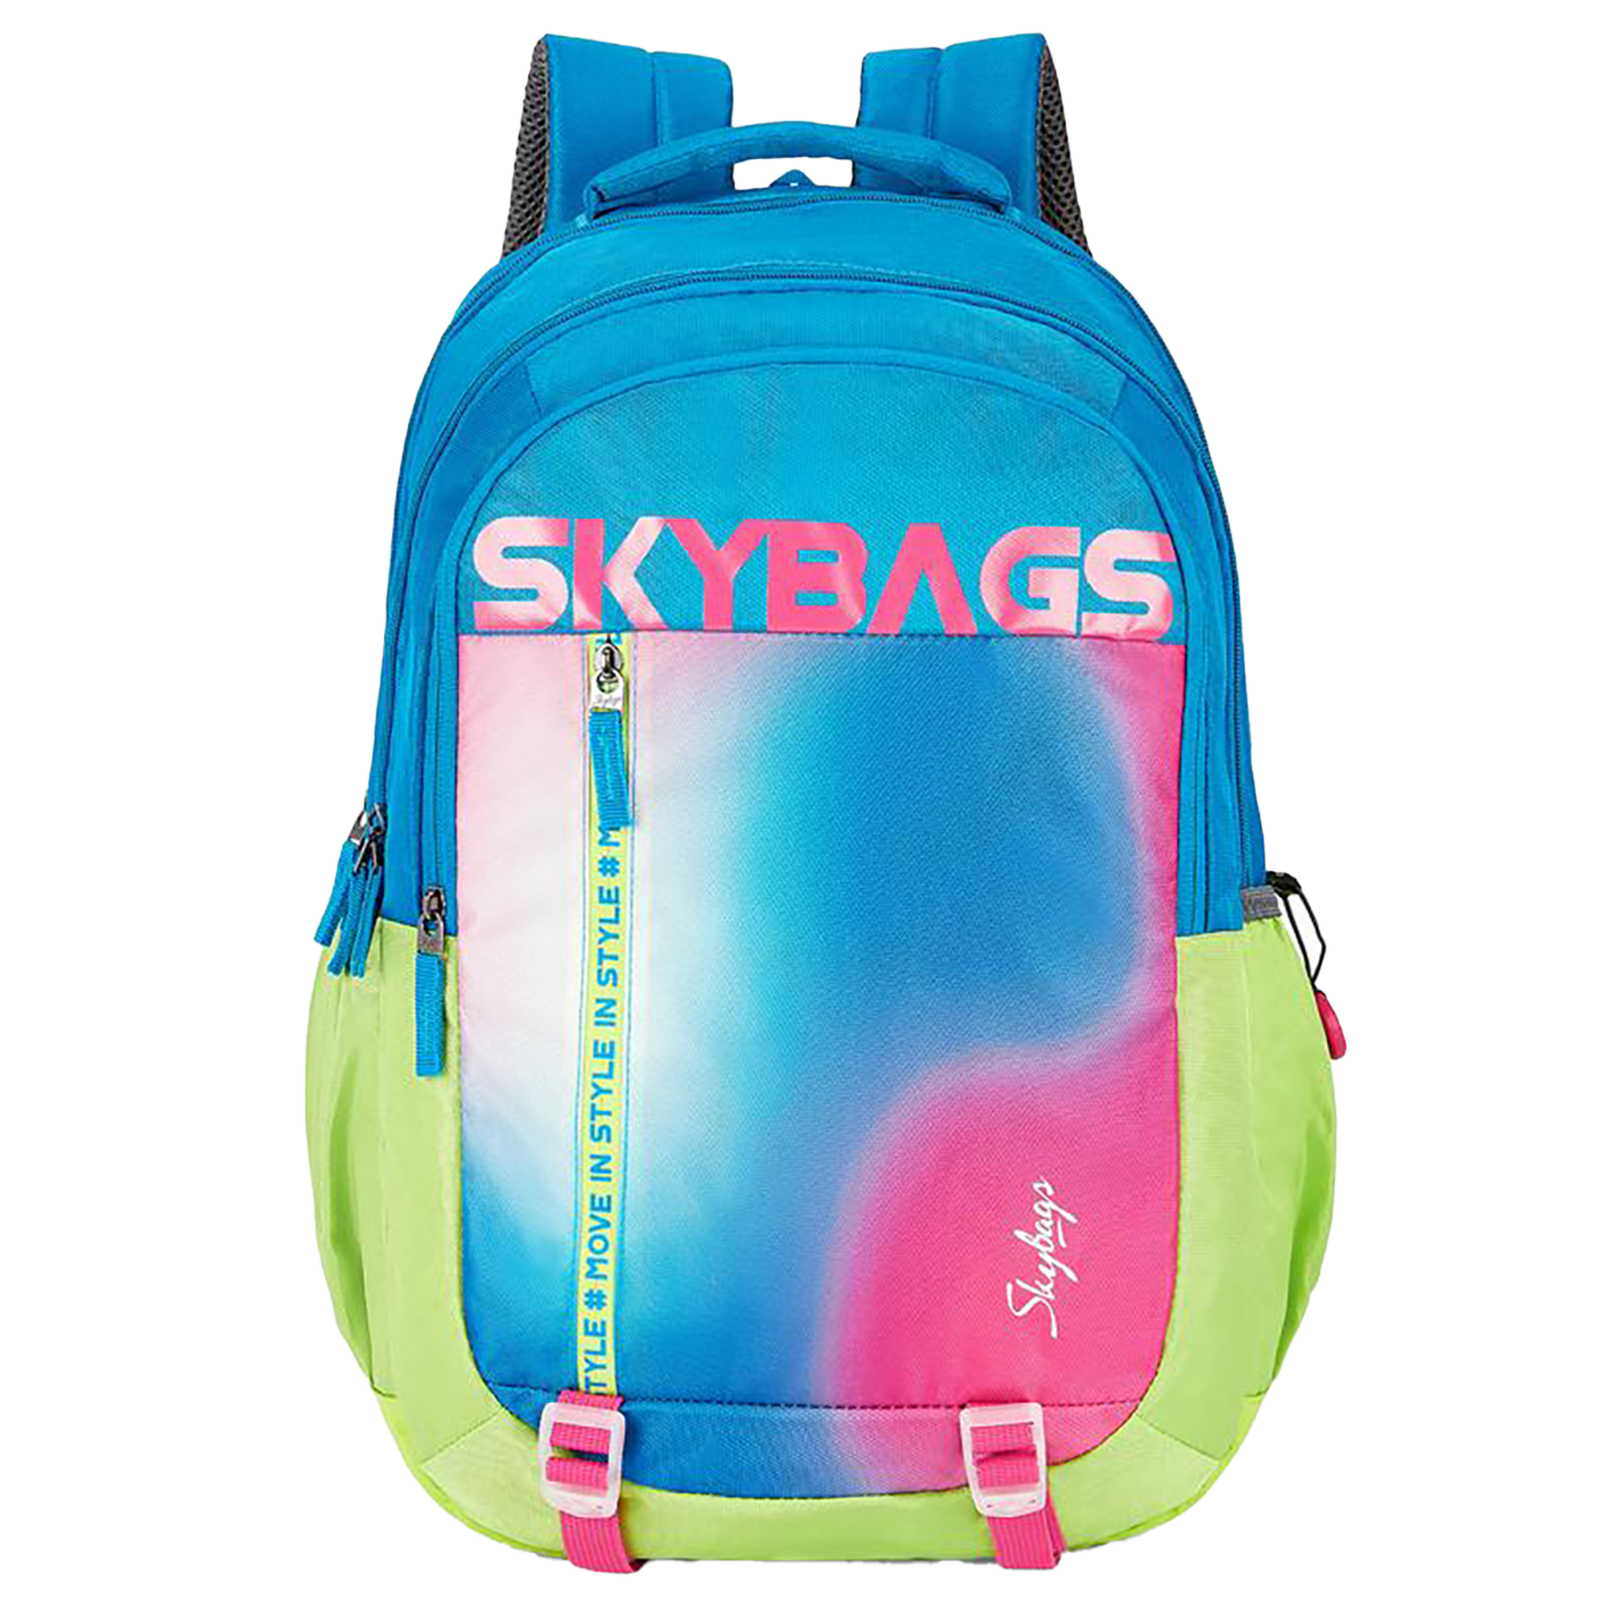 Sky Bags Astro Plus 03 34 Litres Mini Gucci Backpack (Bottle Safety Lock, BPASP3GIT, Multicolor)_1